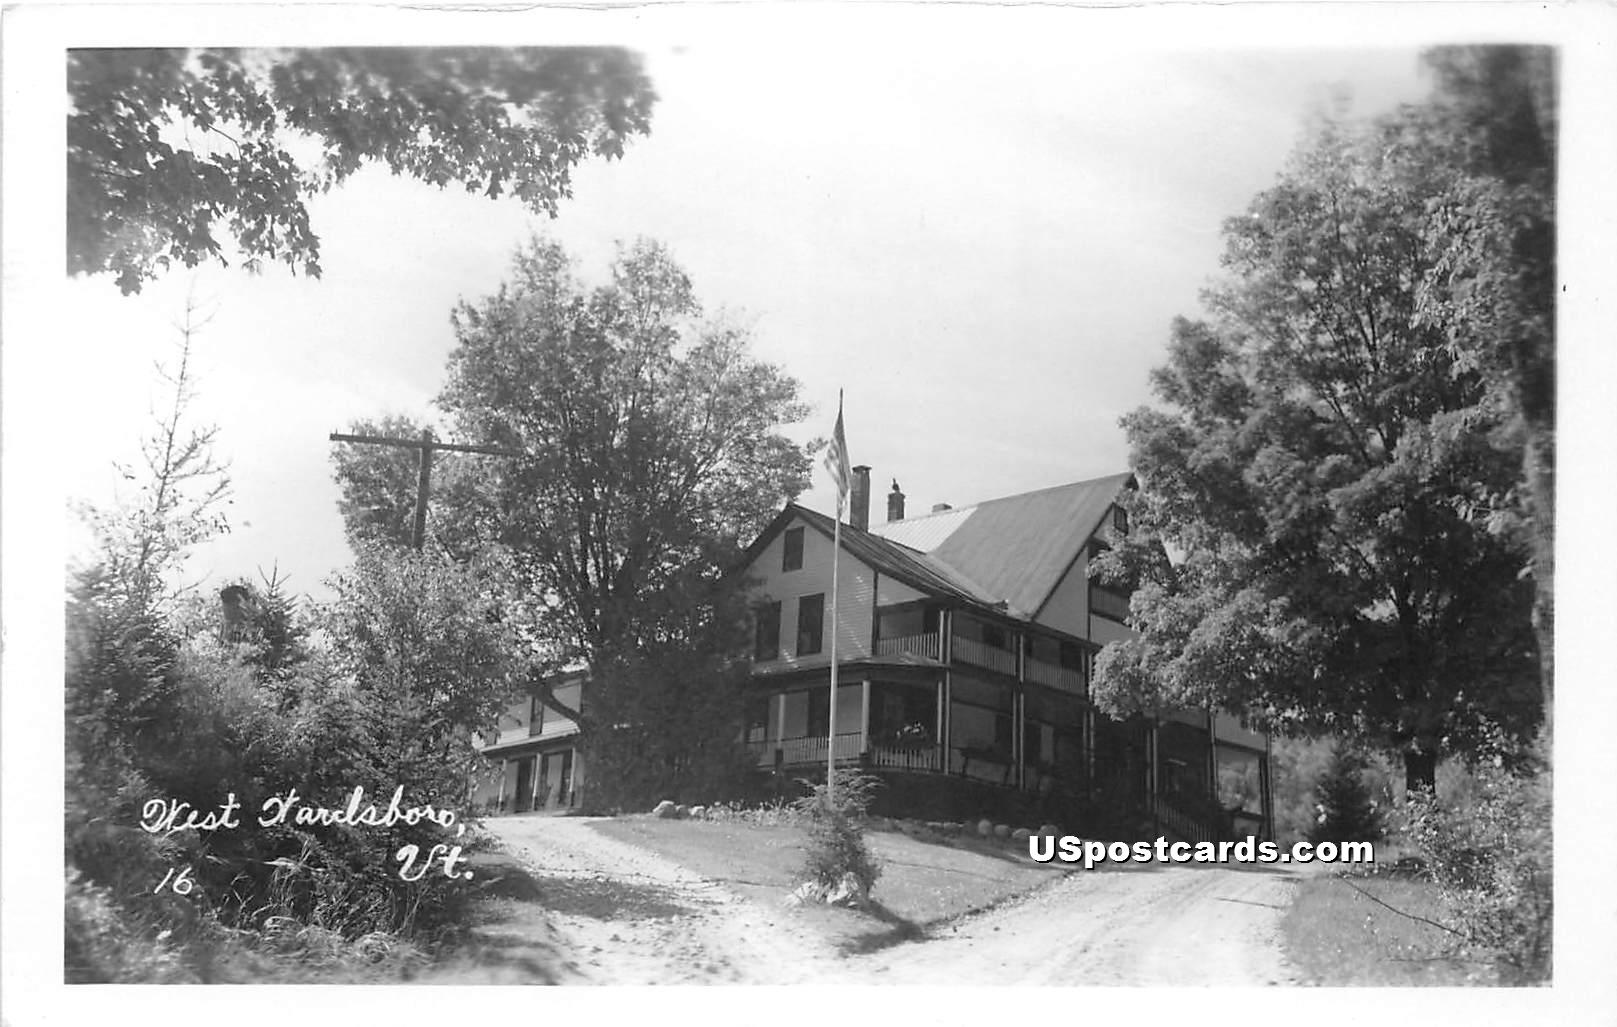 Building & Trees - West Wardsboro, Vermont VT Postcard